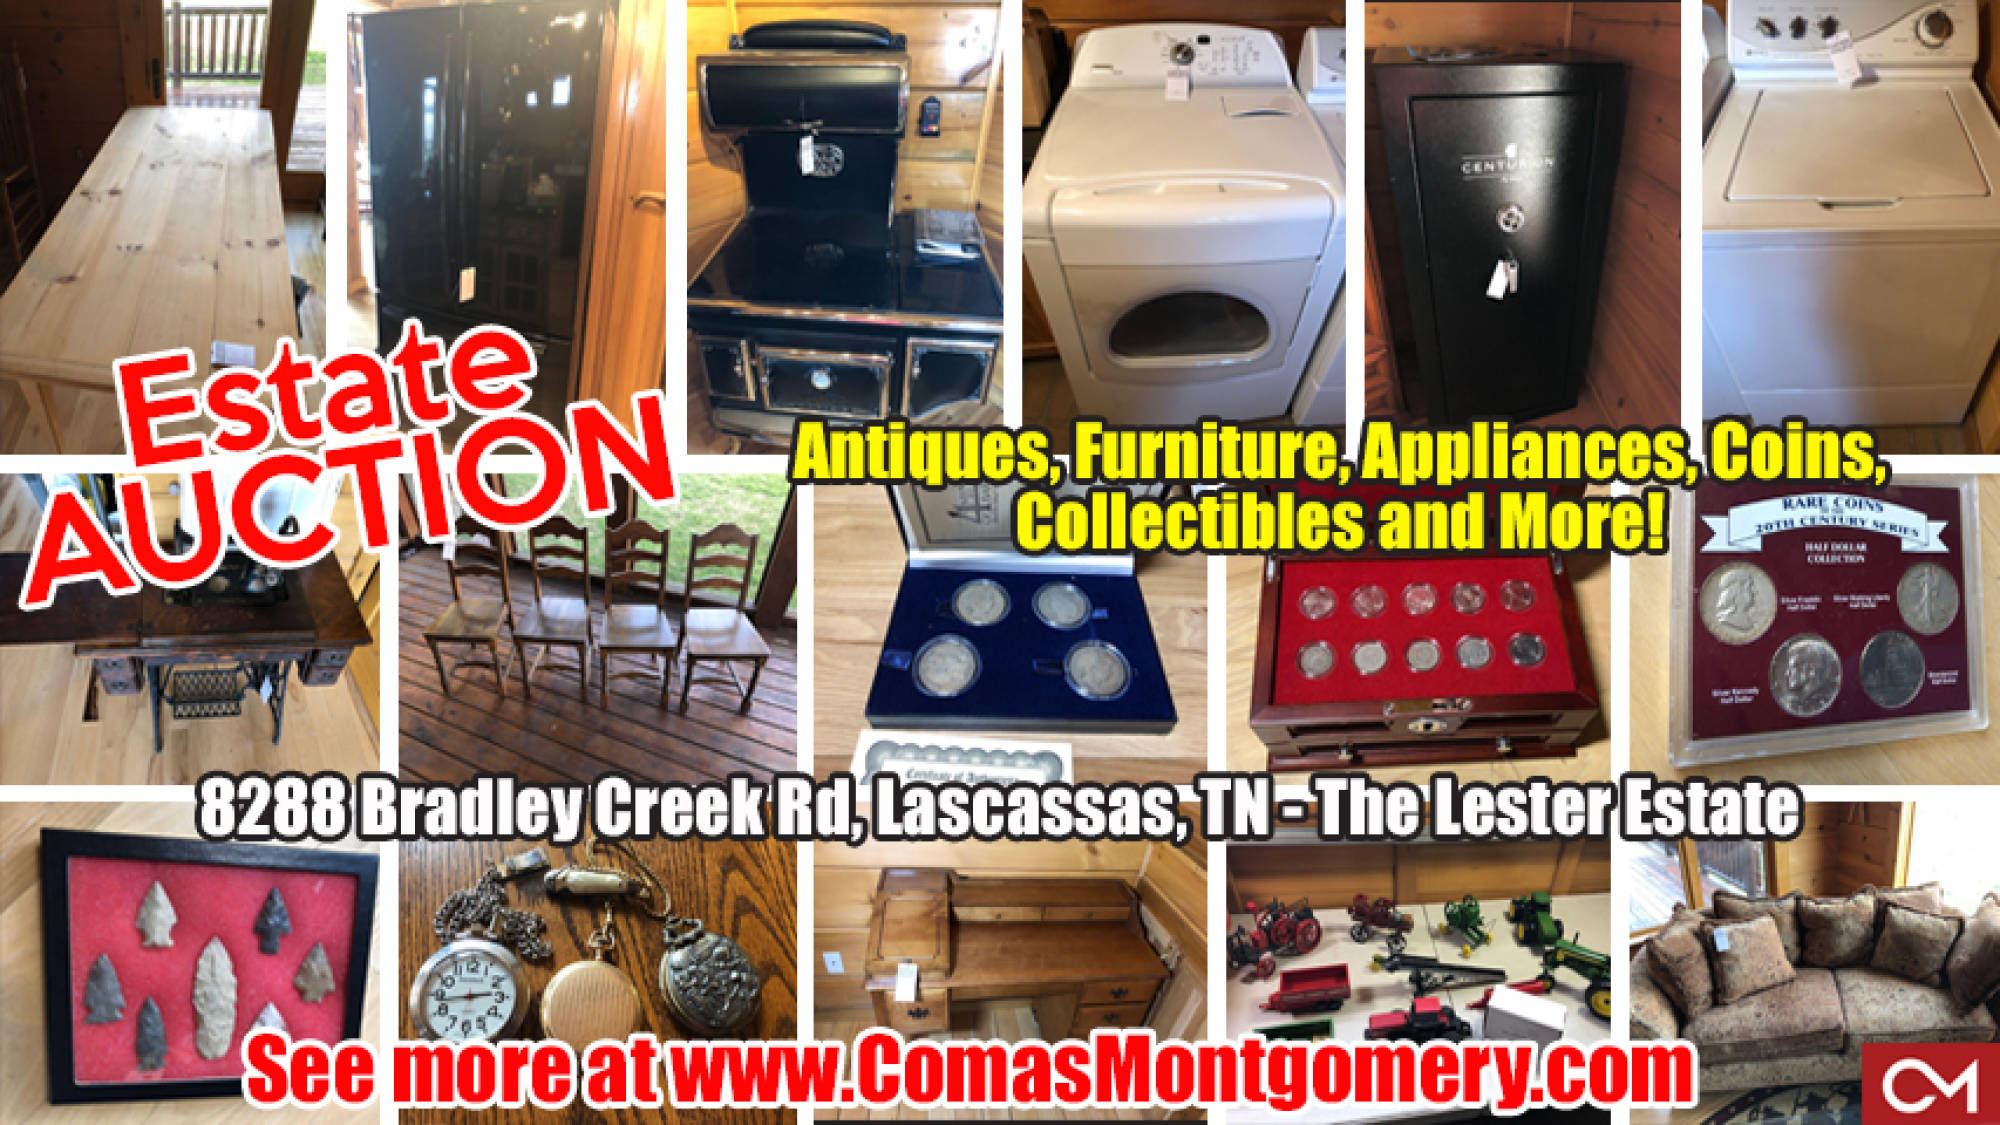 Furniture, Appliances, For Sale, Auction, Estate, Sale, Lester, Bradley, Coins, Collectibles, Knives, Firearms, Antiques, Model, Cars, Tractors, Arrowheads, Watches, Tools, Equipment, Lascassas, Tennessee, Comas, Montgomery